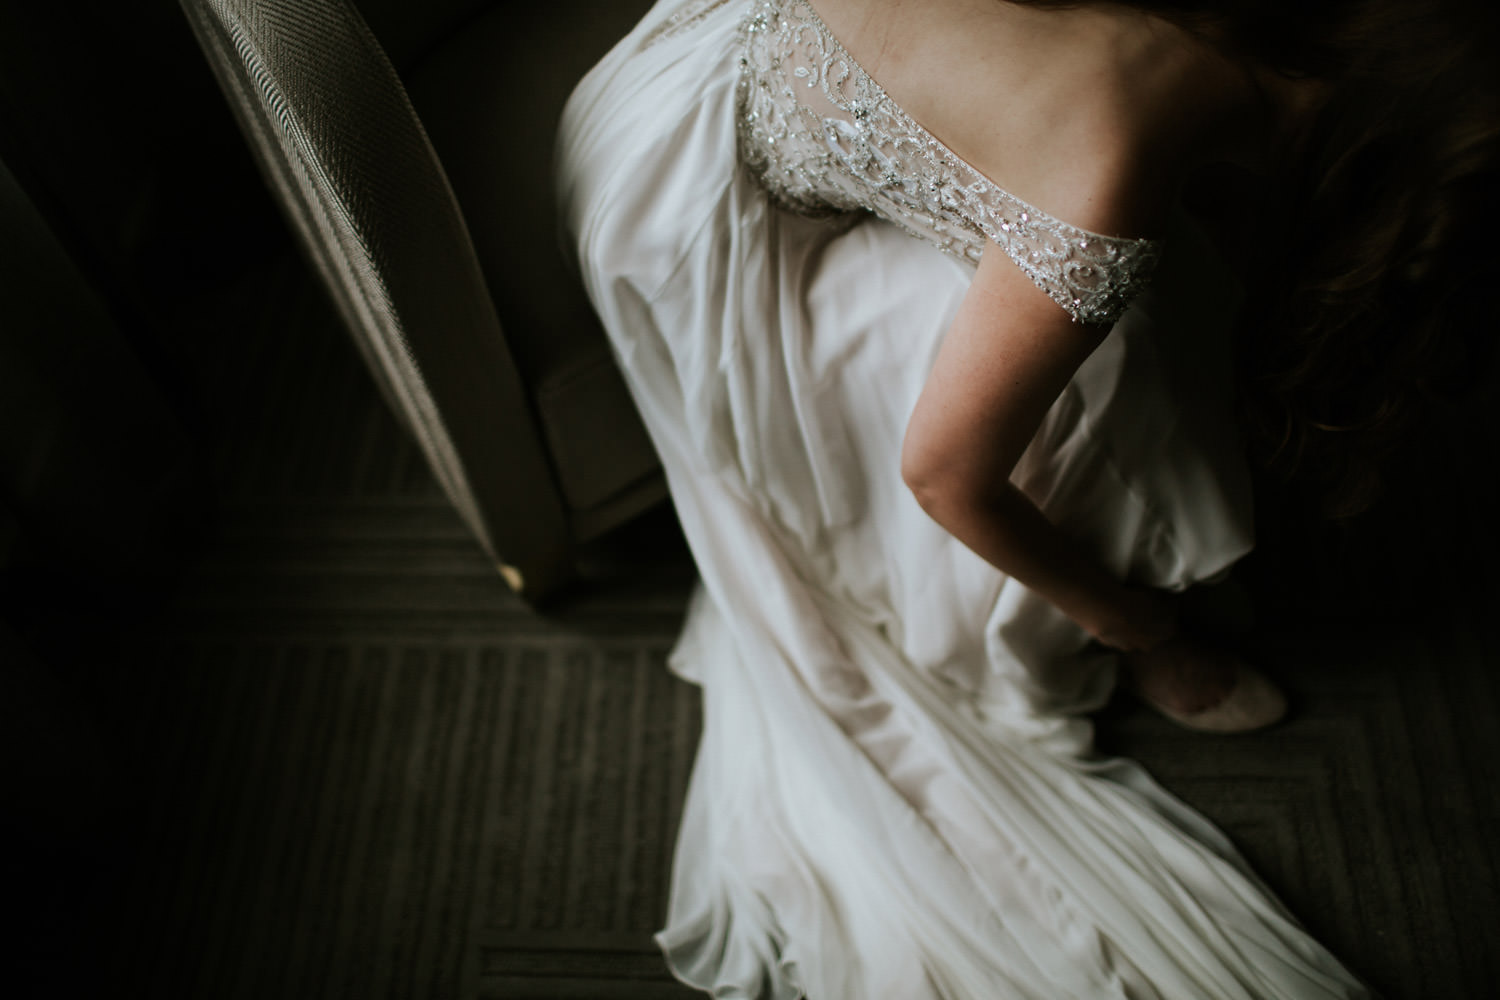 Fine art picture of the bride's dress